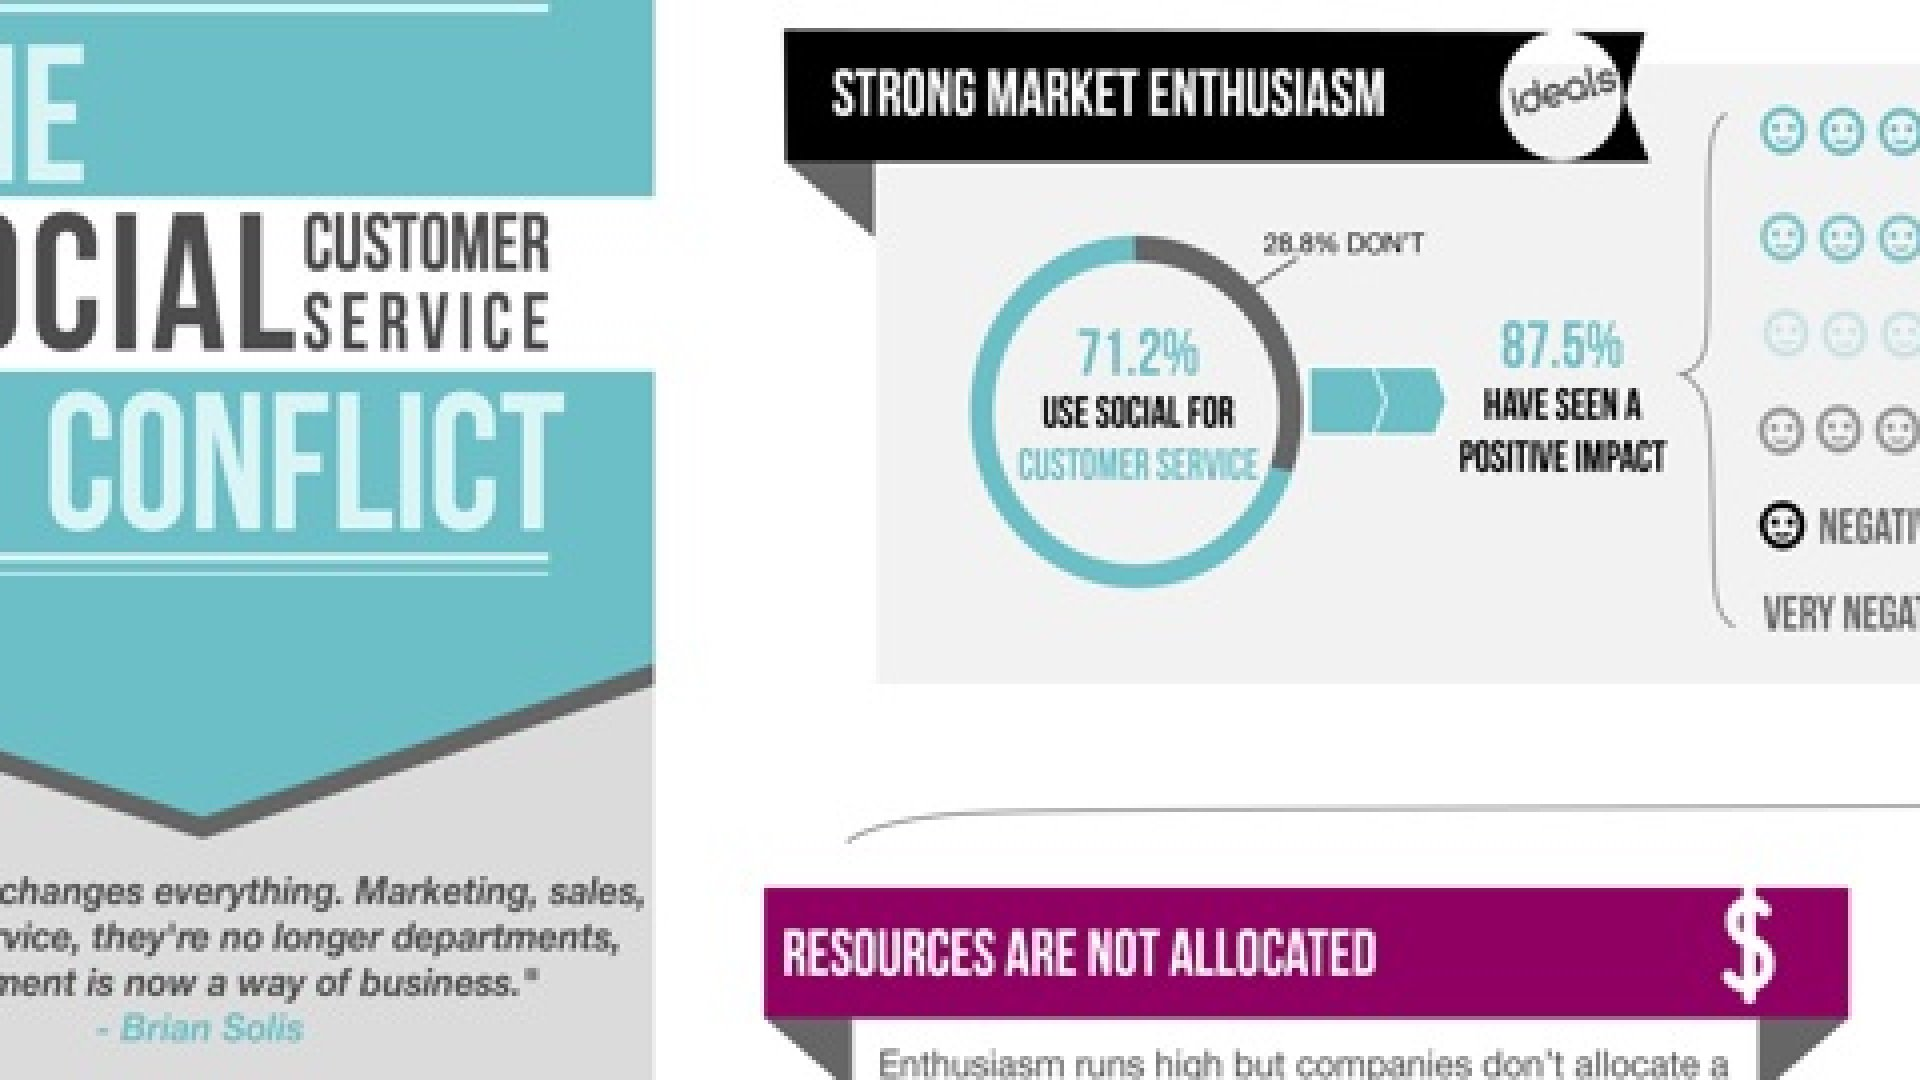 <strong>CLICK IMAGE </strong>. How are you treating engagement? Here's a snapshot of the industry.